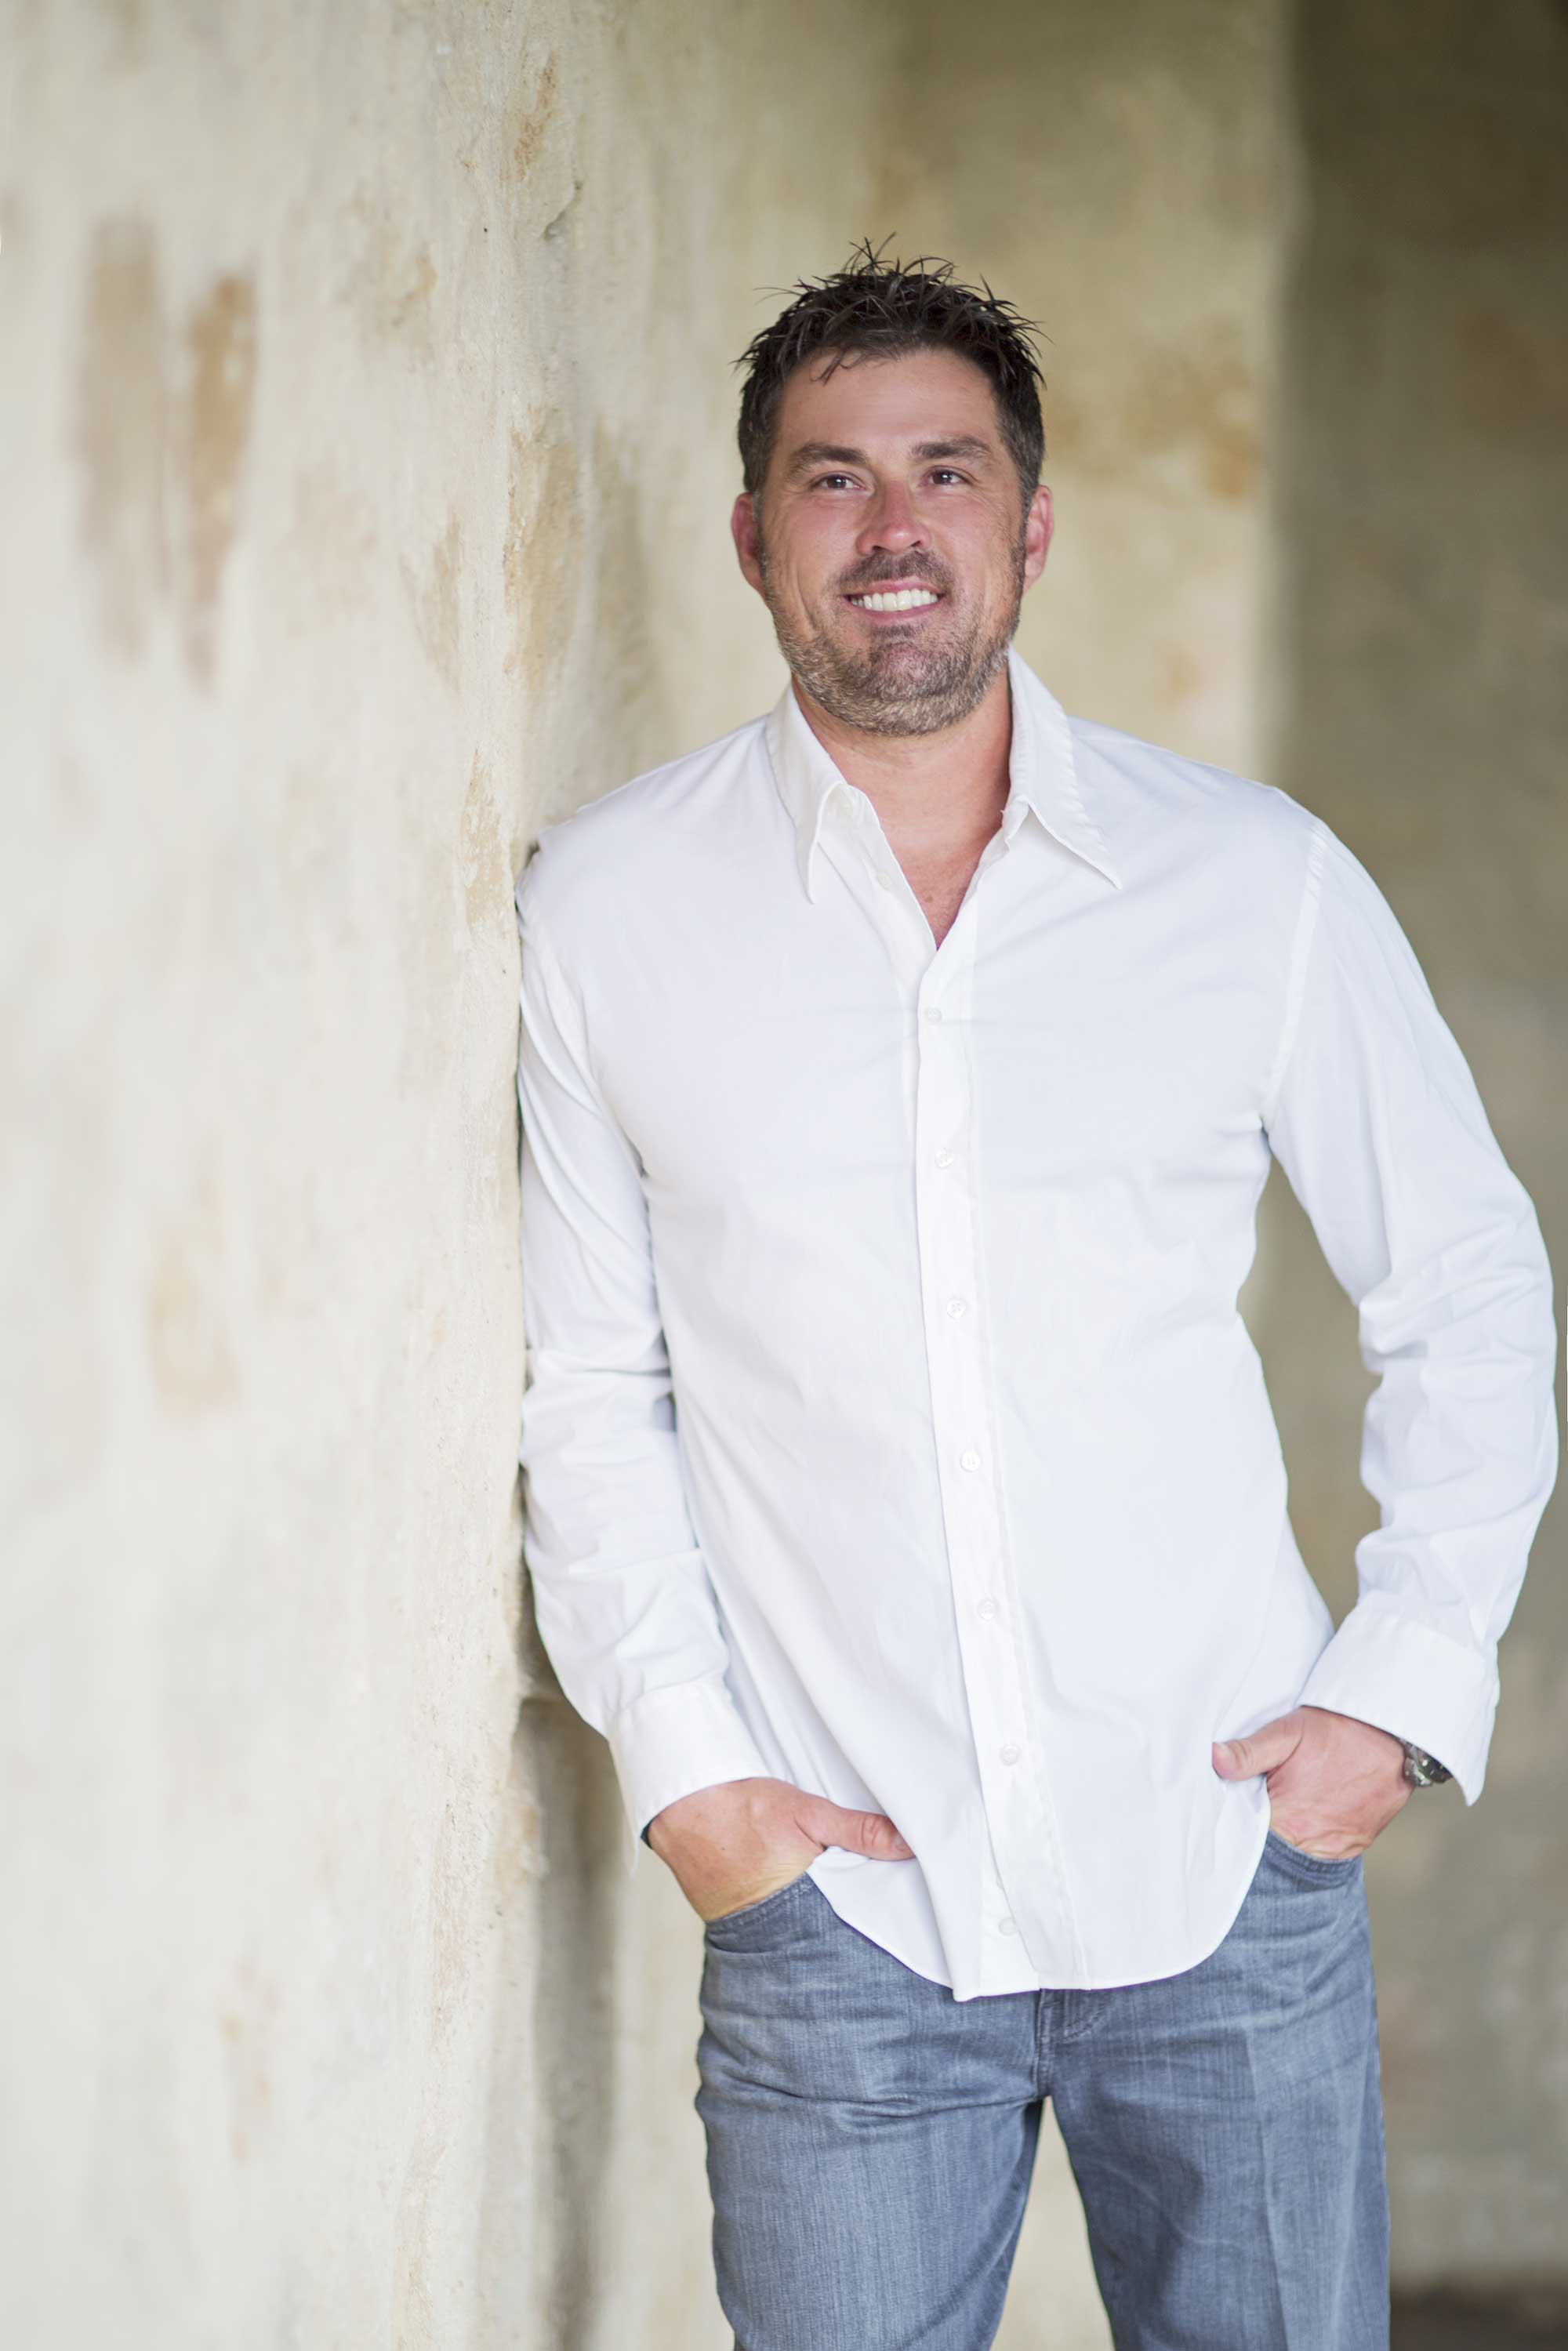 Marcus Luttrell, former Navy SEAL and author of 'Lone Survivor.' Photo used with permission.